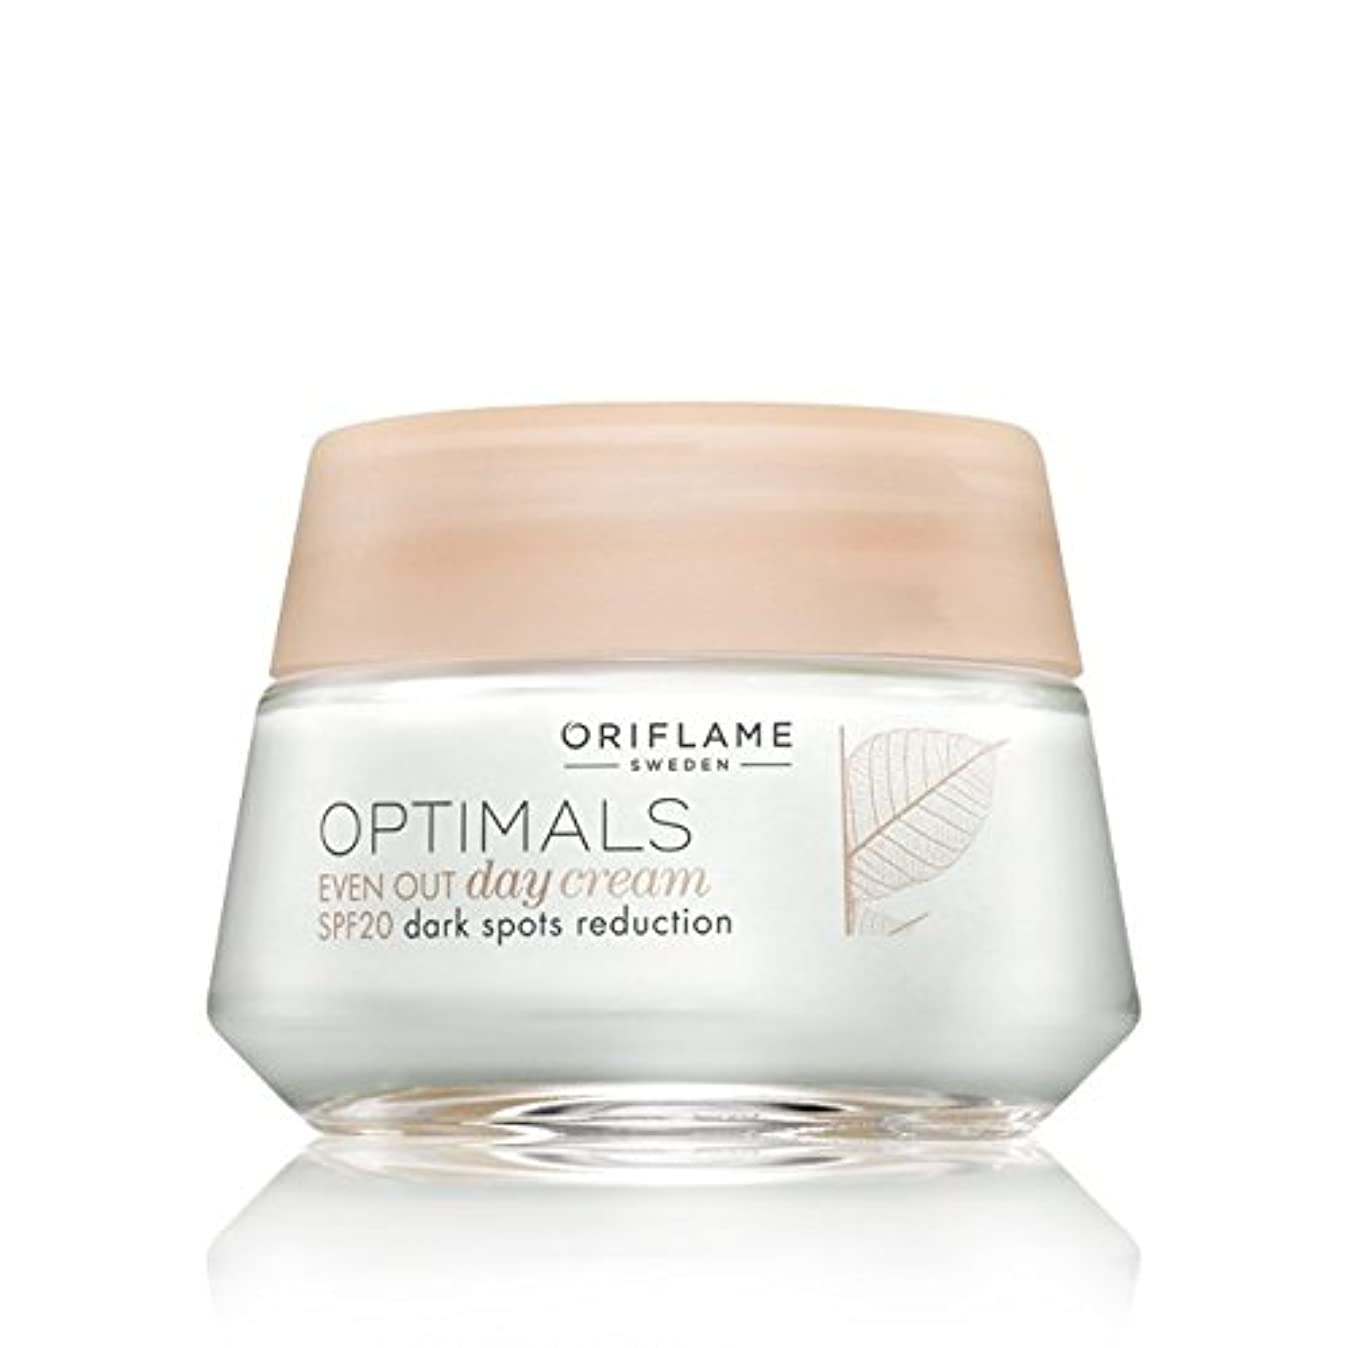 バー説明する家庭教師Oriflame Optimals SPF 20 Dark Spot Reduction Even Out Day Cream, 50ml